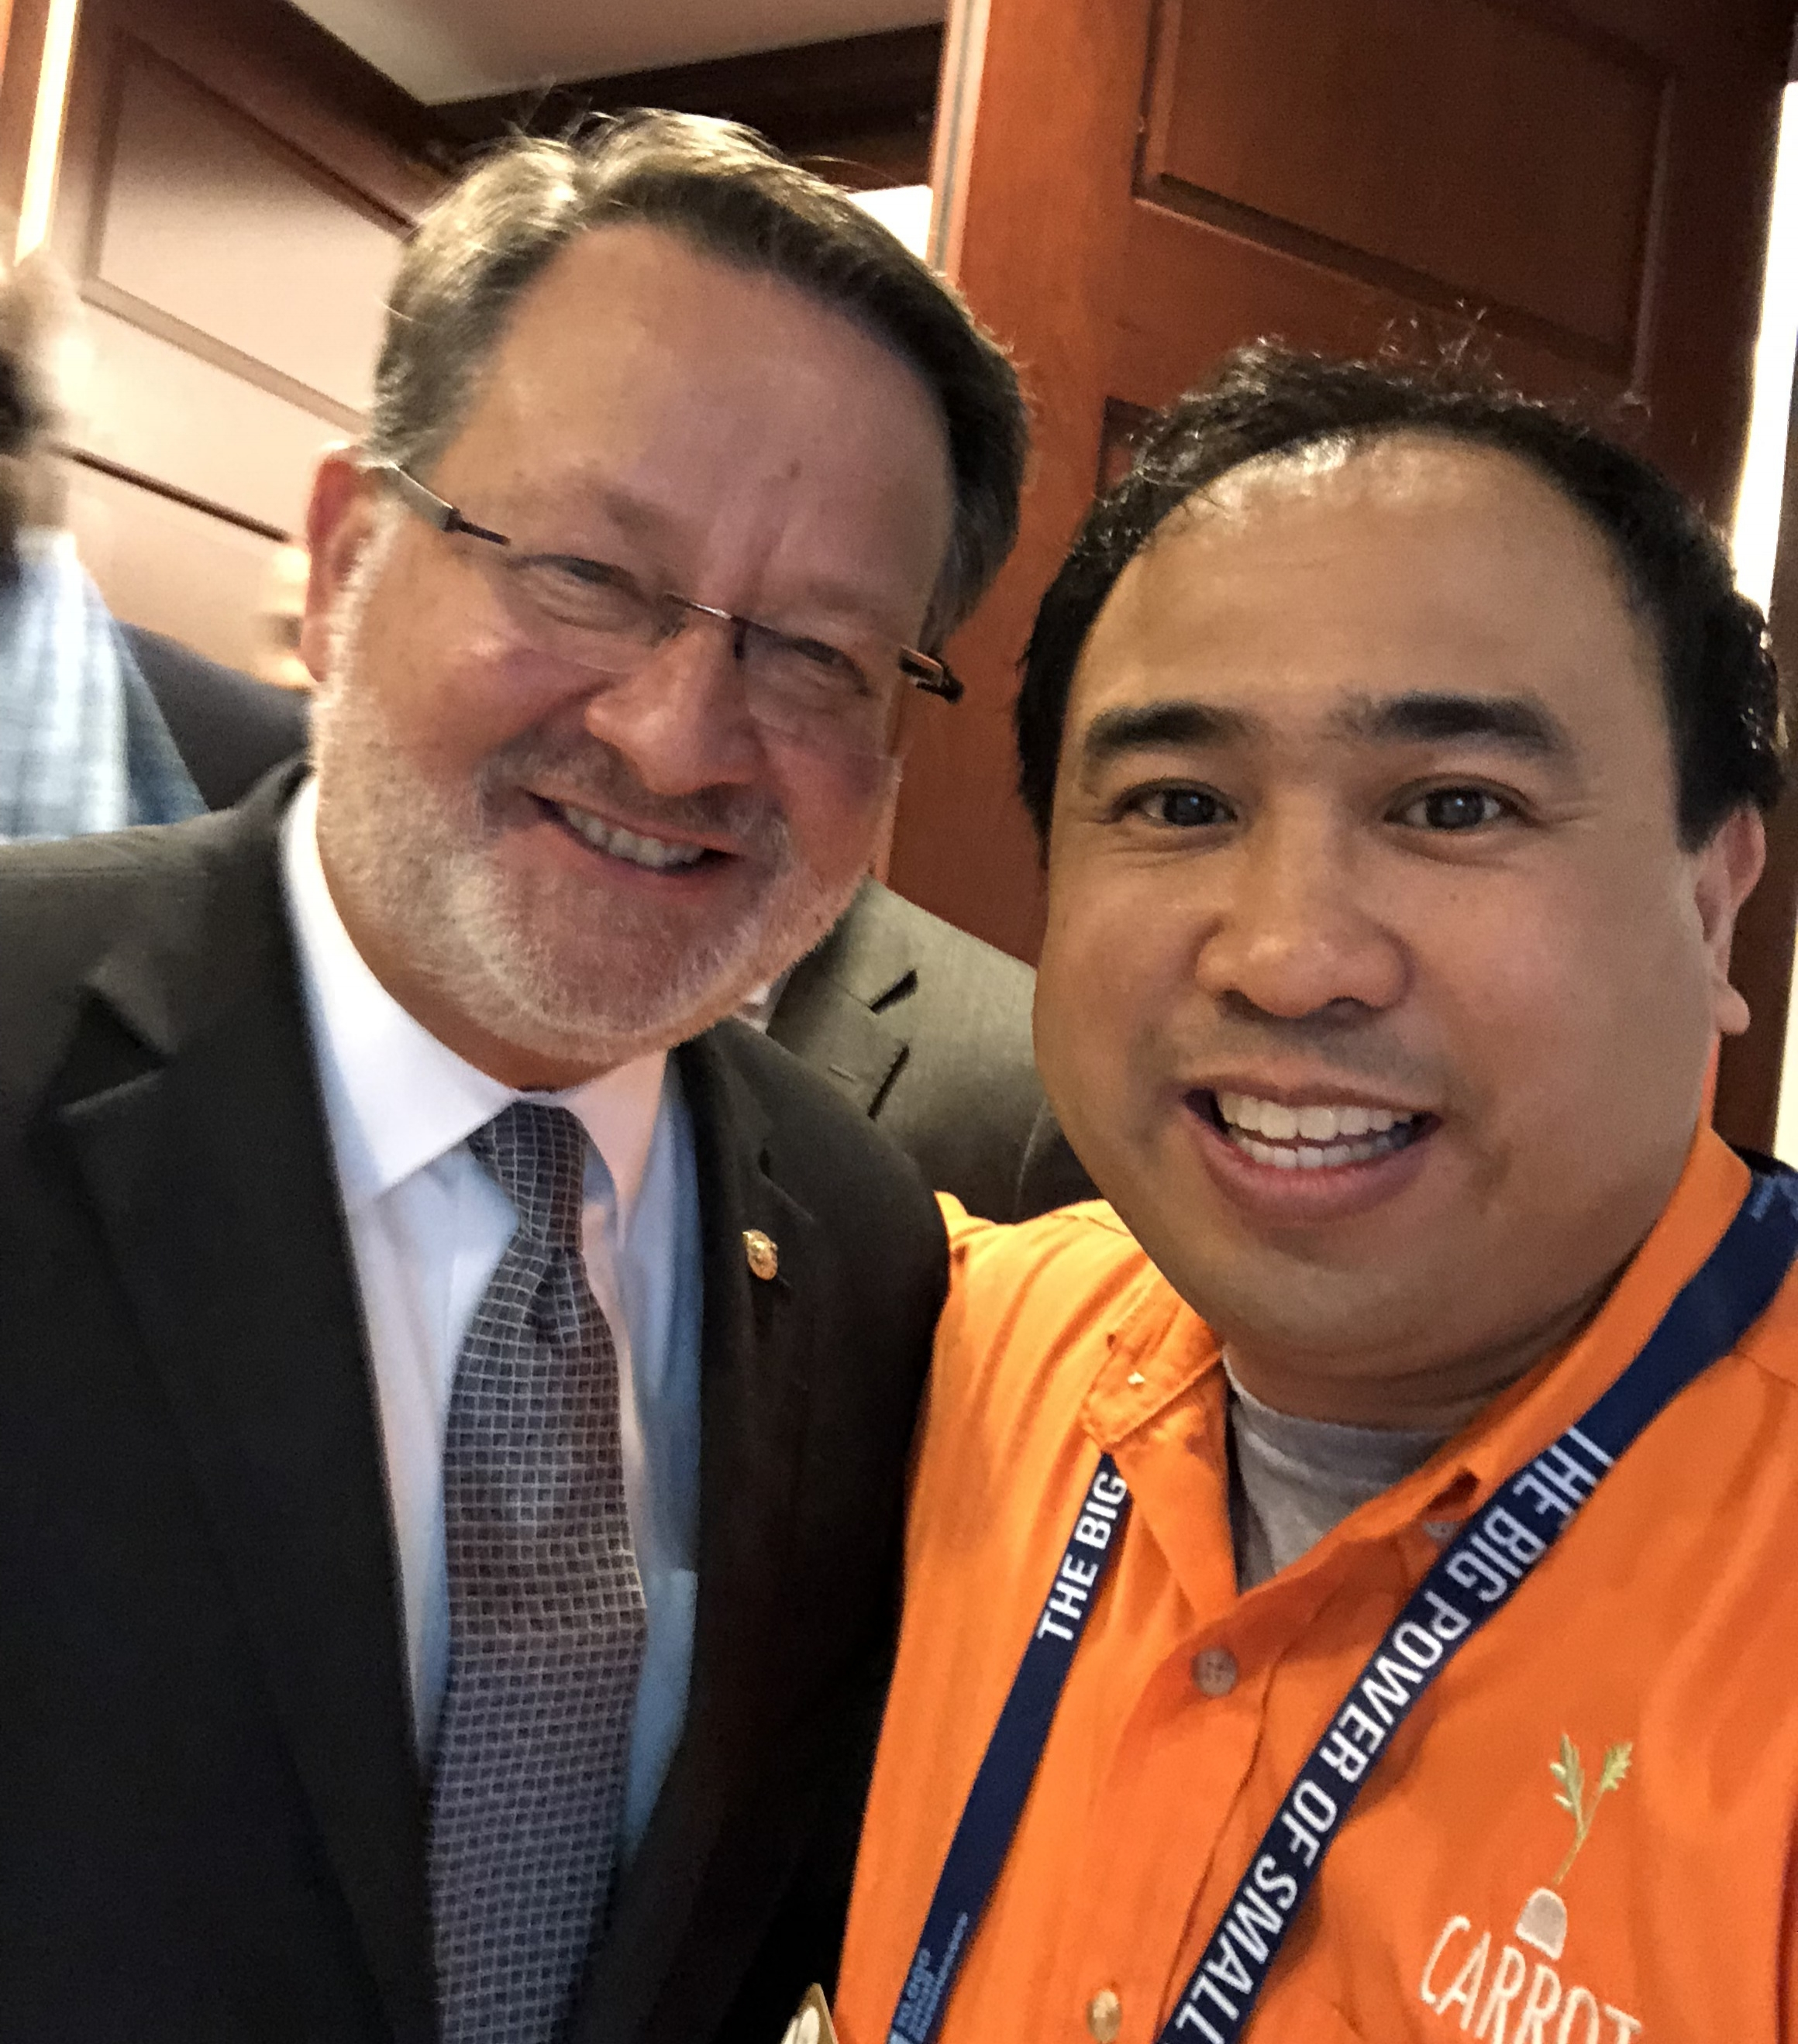 U.S. Senator Gary Peters (MI) with CARROT Founder & CEO Michael Antaran.